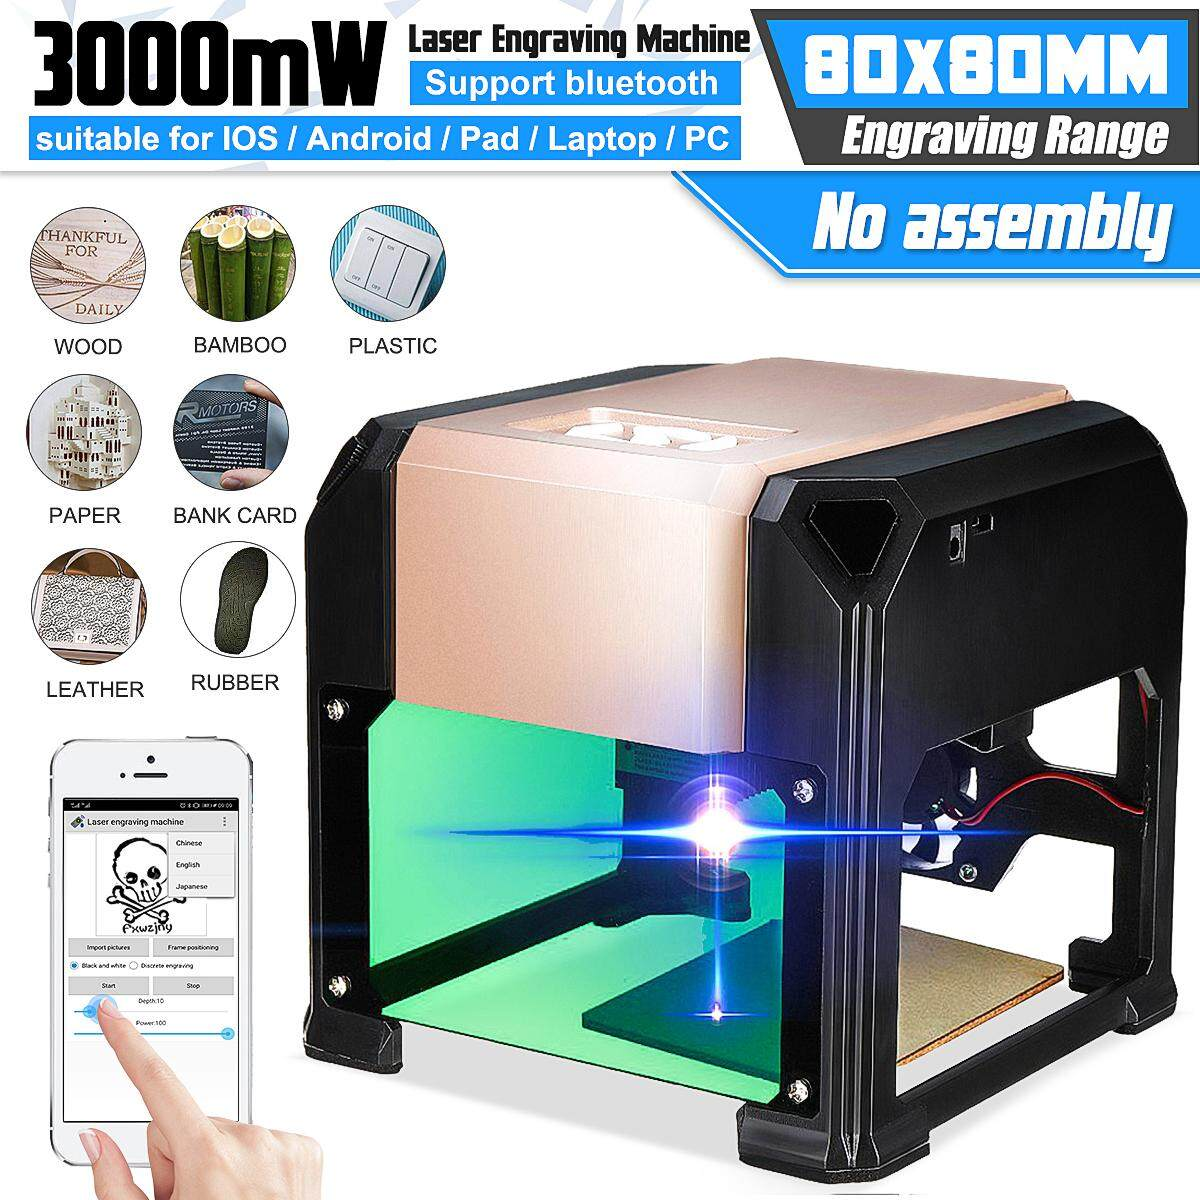 3000mW High Speed Desktop Laser Engraving Machine Phone USB DIY Carving -US Plug